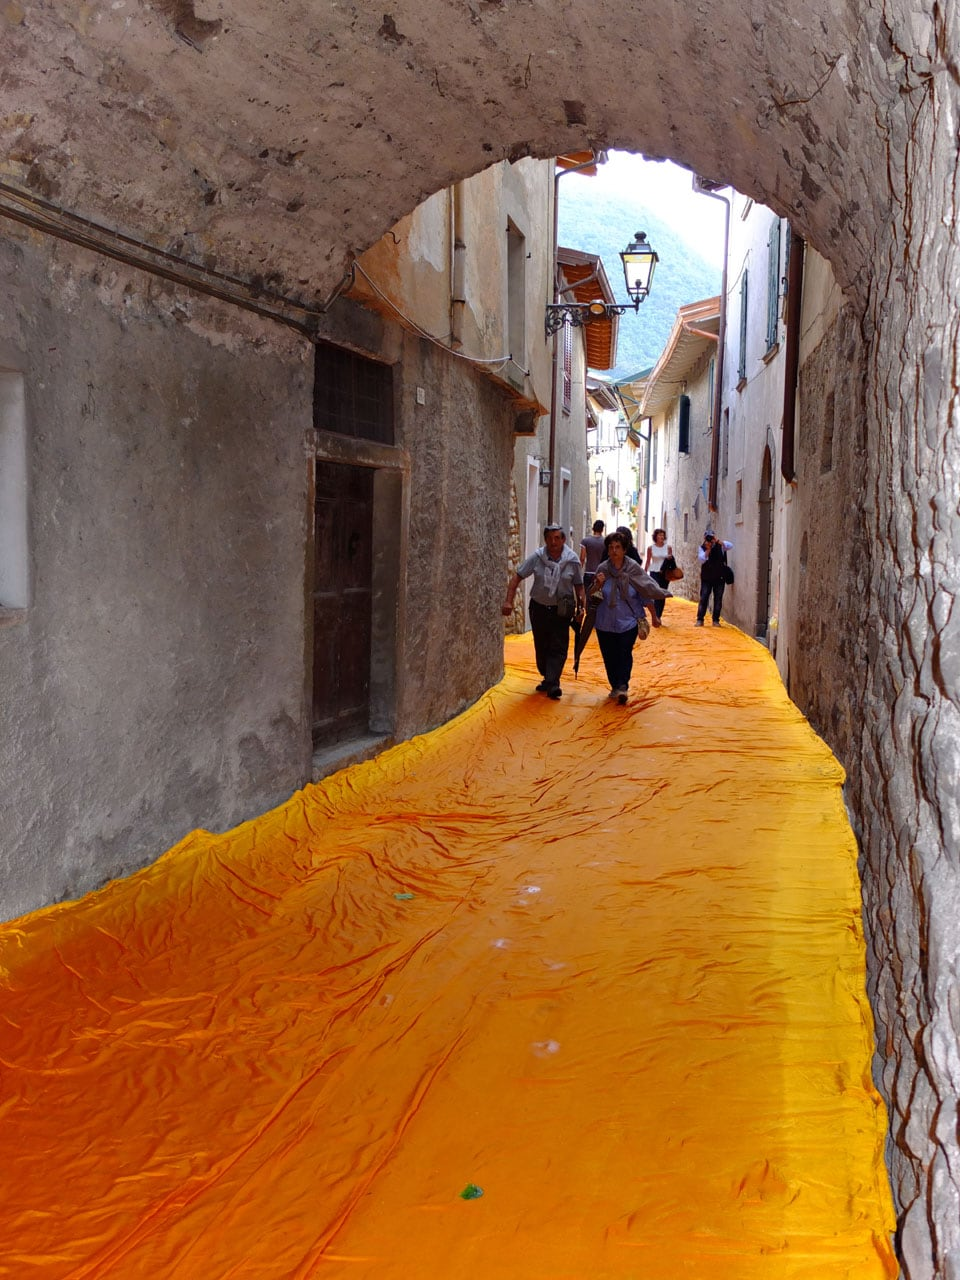 Christo artwork Lake Iseo 2016 The Floating Piers 02